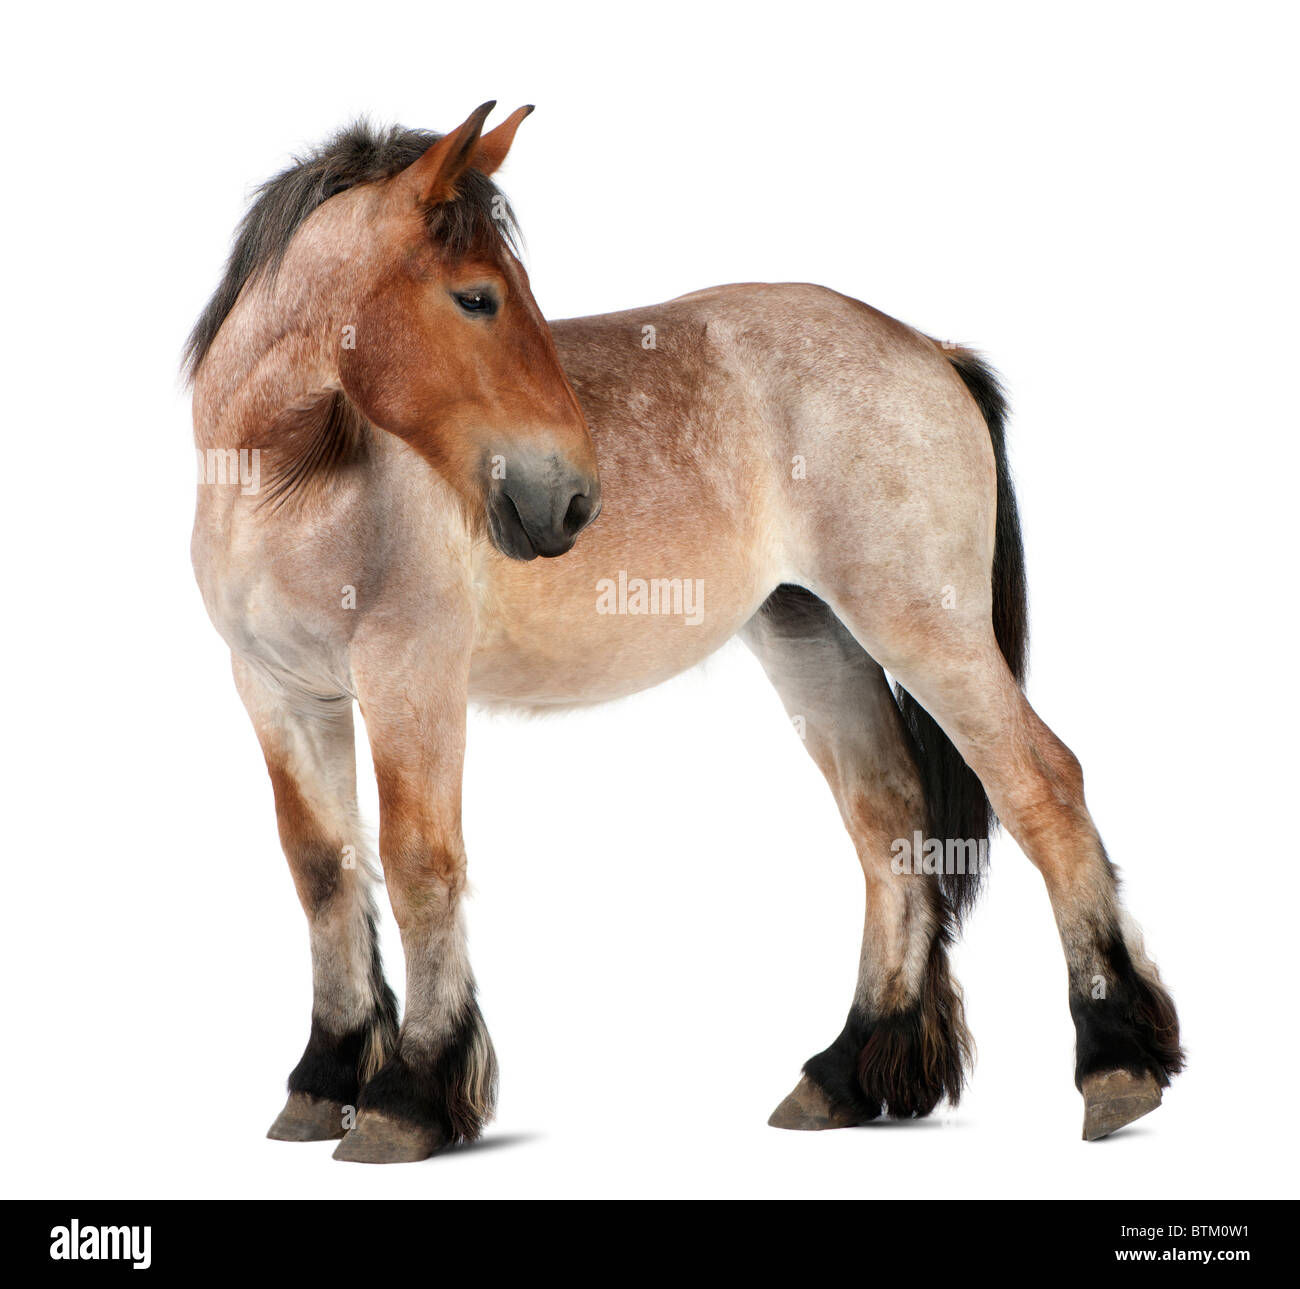 Belgian Heavy Horse foal, Brabancon, a draft horse breed, 13 months old, standing in front of white background - Stock Image